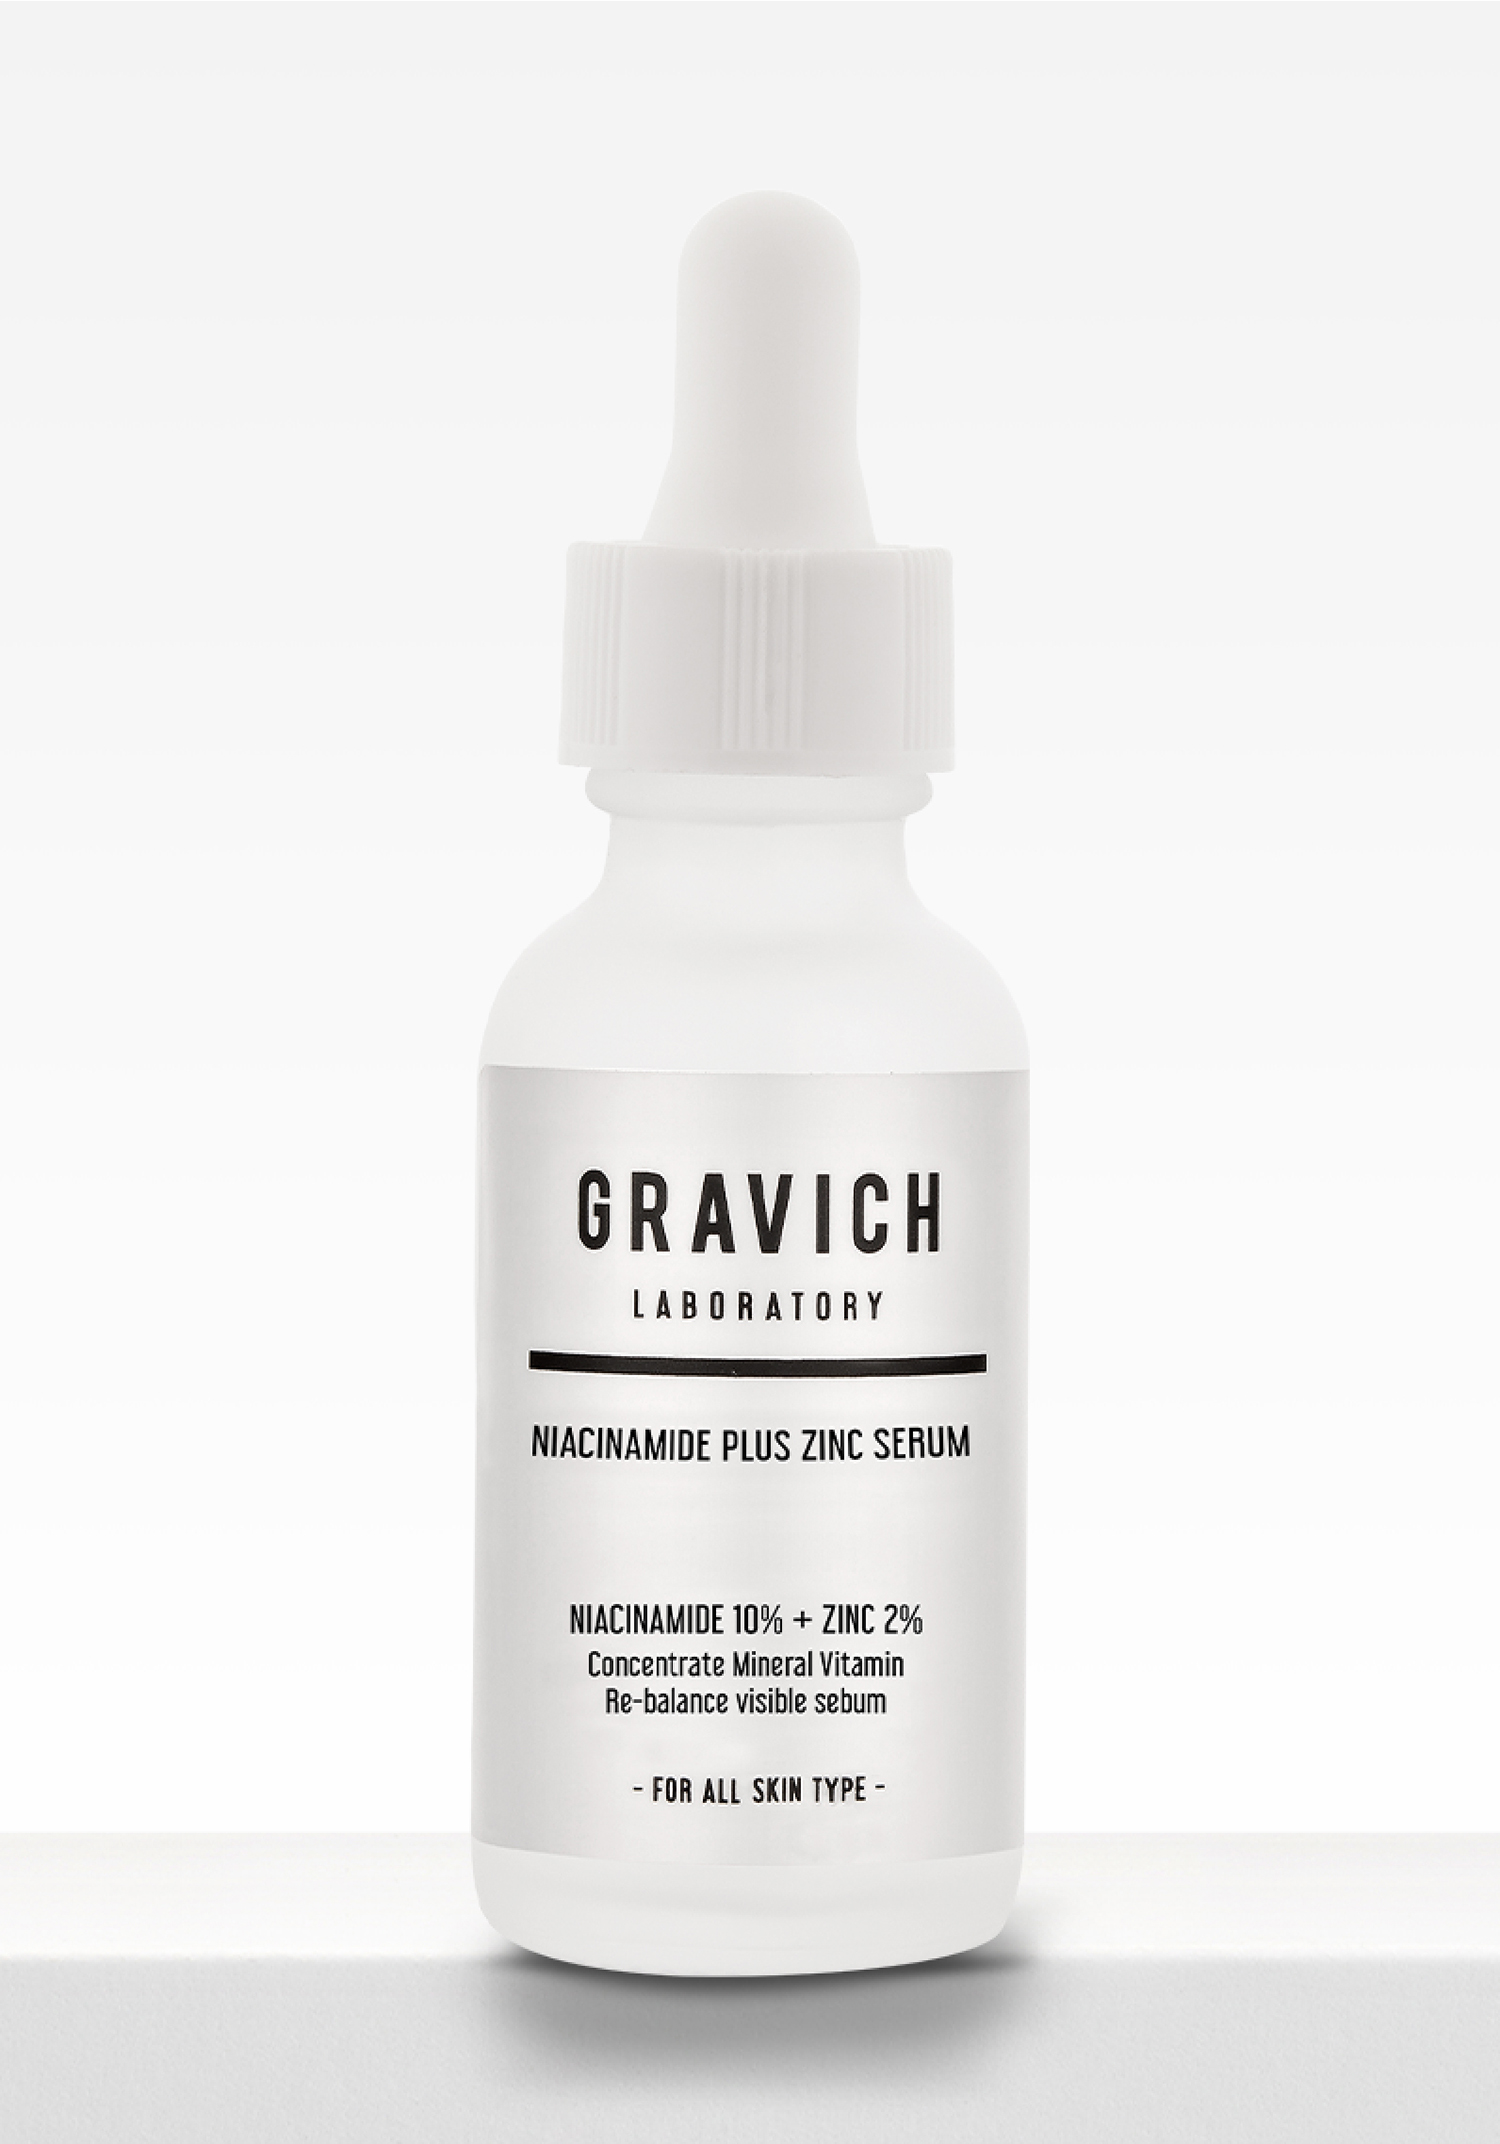 Gravich Niacinamide Plus Zinc PCA Serum 30 Ml